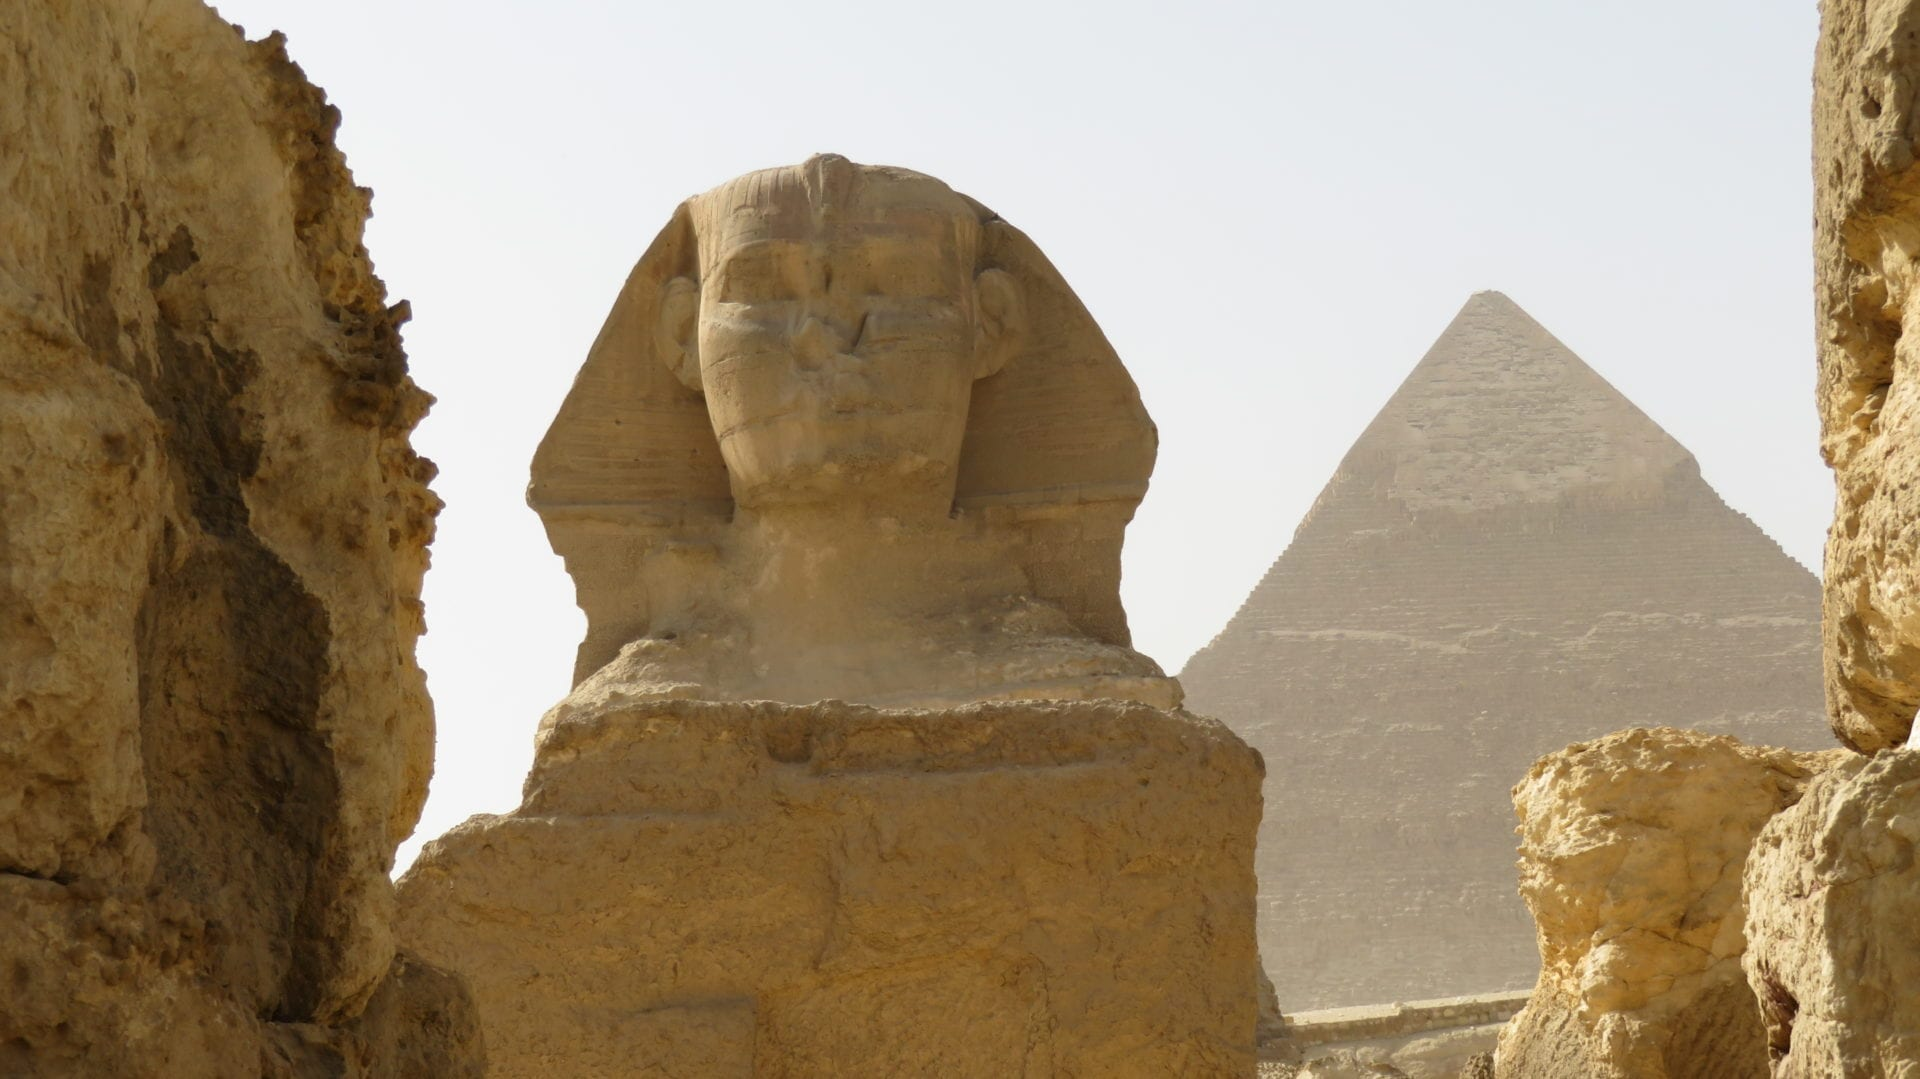 Sphinx, Giza Pyramids-Egypt-Eternal Egypt-12 Days in Egypt-Egypt Private Tour Package-Private Egypt Tour Package-Egypt Private Tours